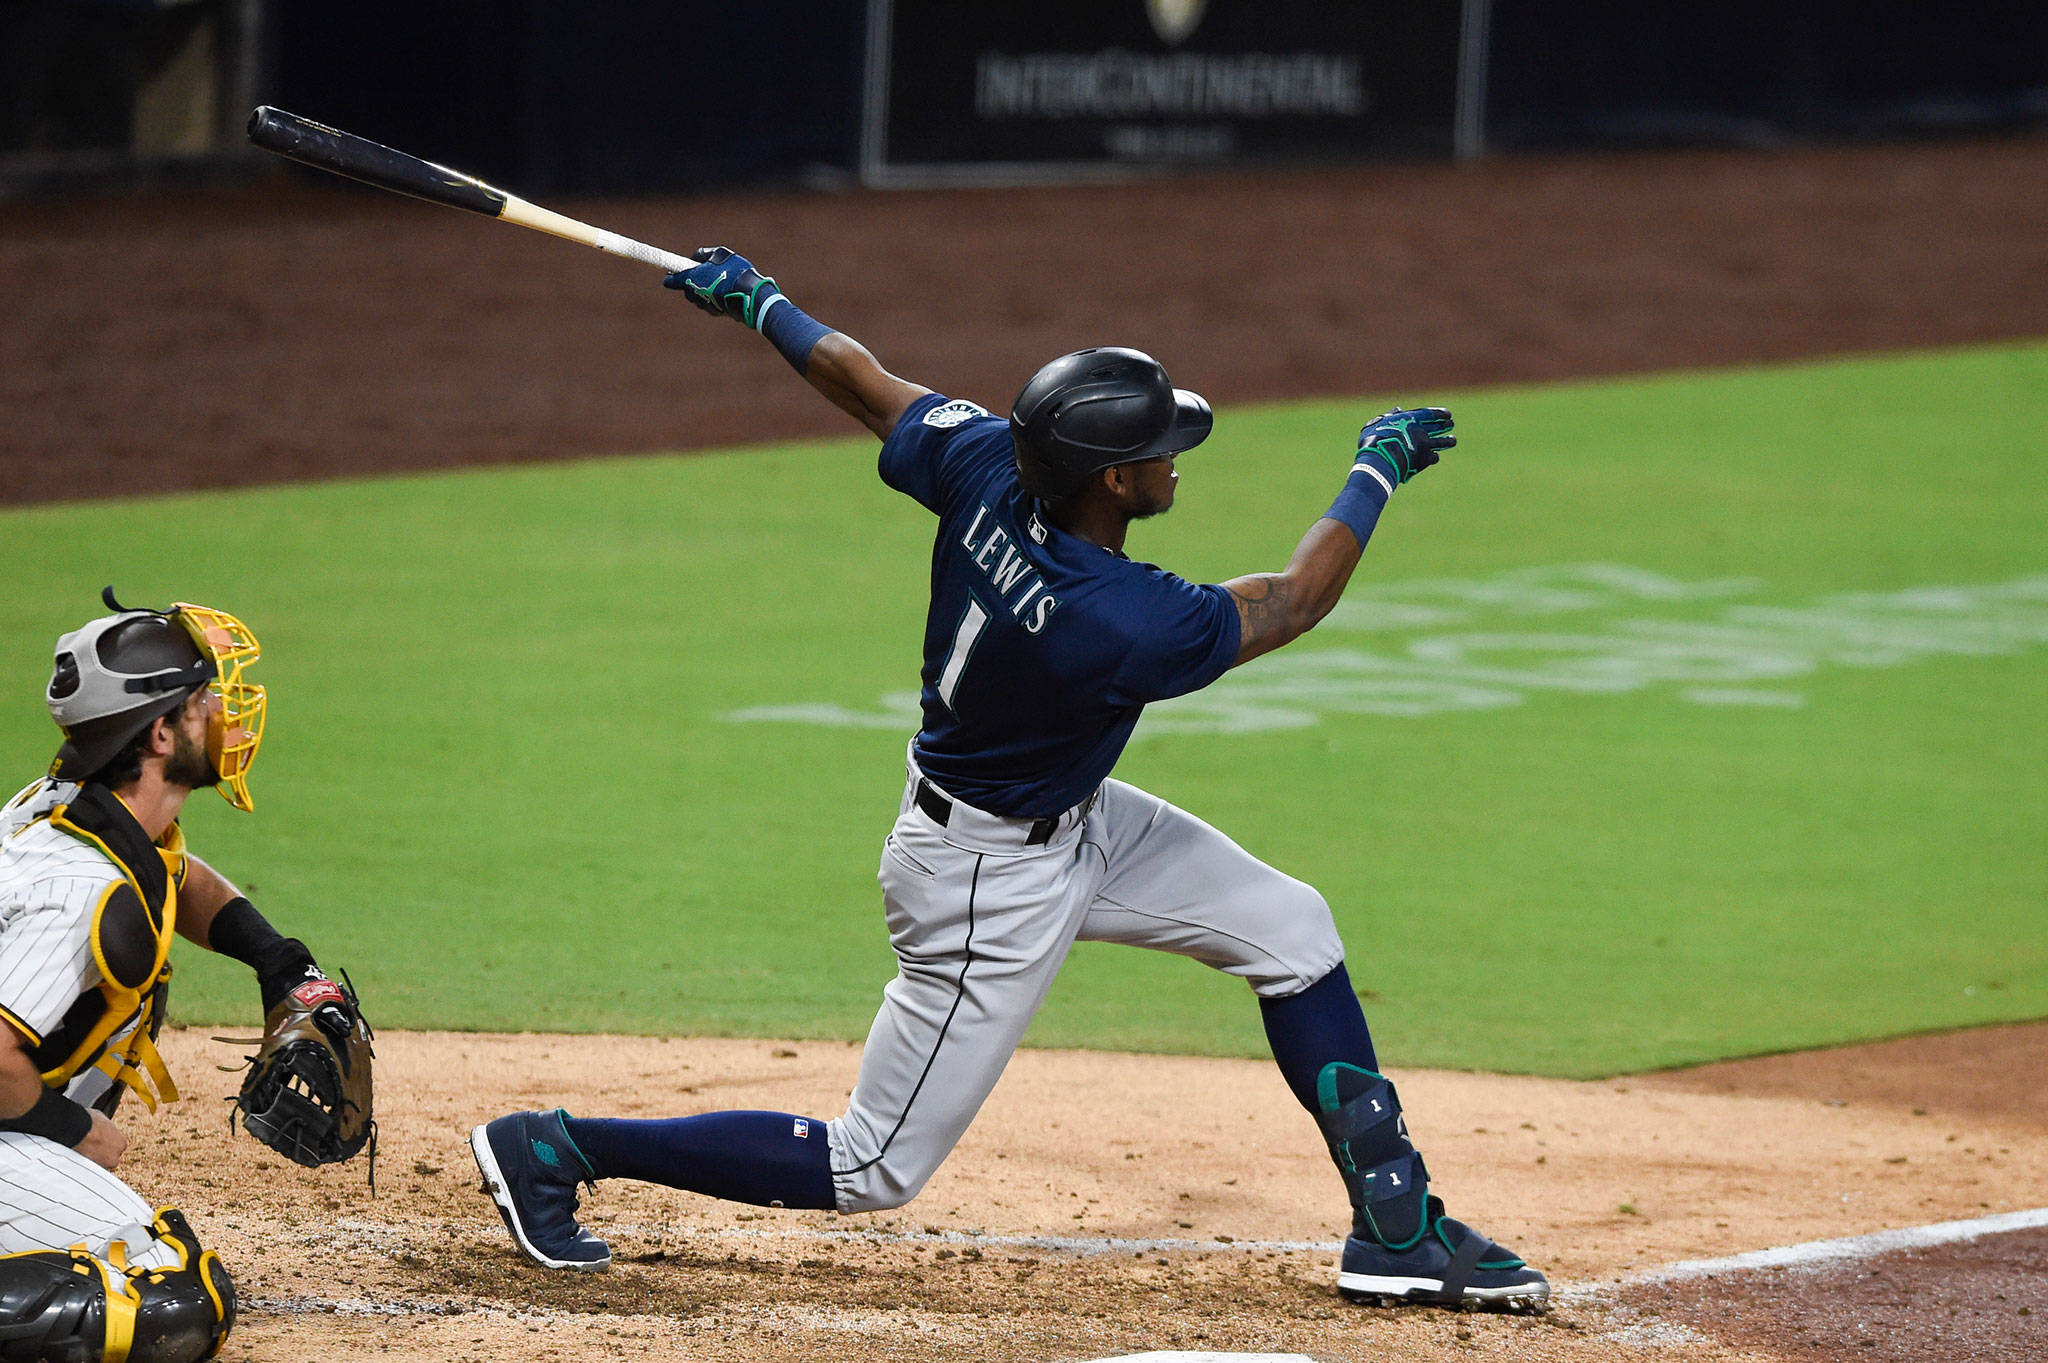 The Mariners' Kyle Lewis (1) hits a solo home run during the fifth inning of a game against the Padres on Sept. 19, 2020, in San Diego. (AP Photo/Denis Poroy)